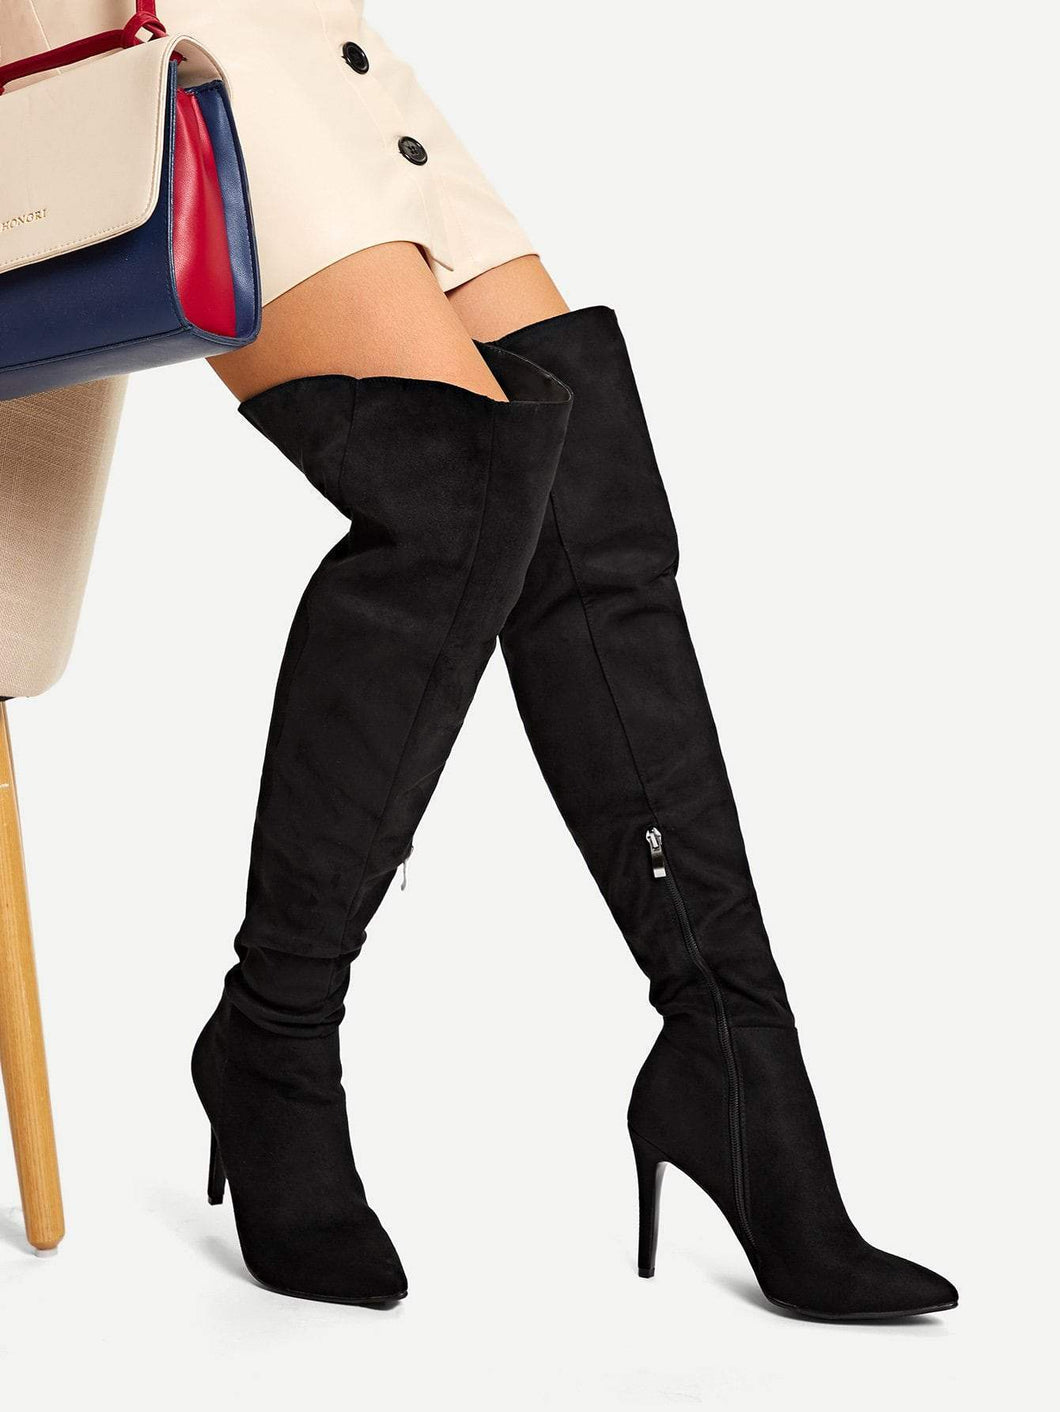 Point Toe Thigh High Suede Boots fashion clothing accessories shoes jewelry